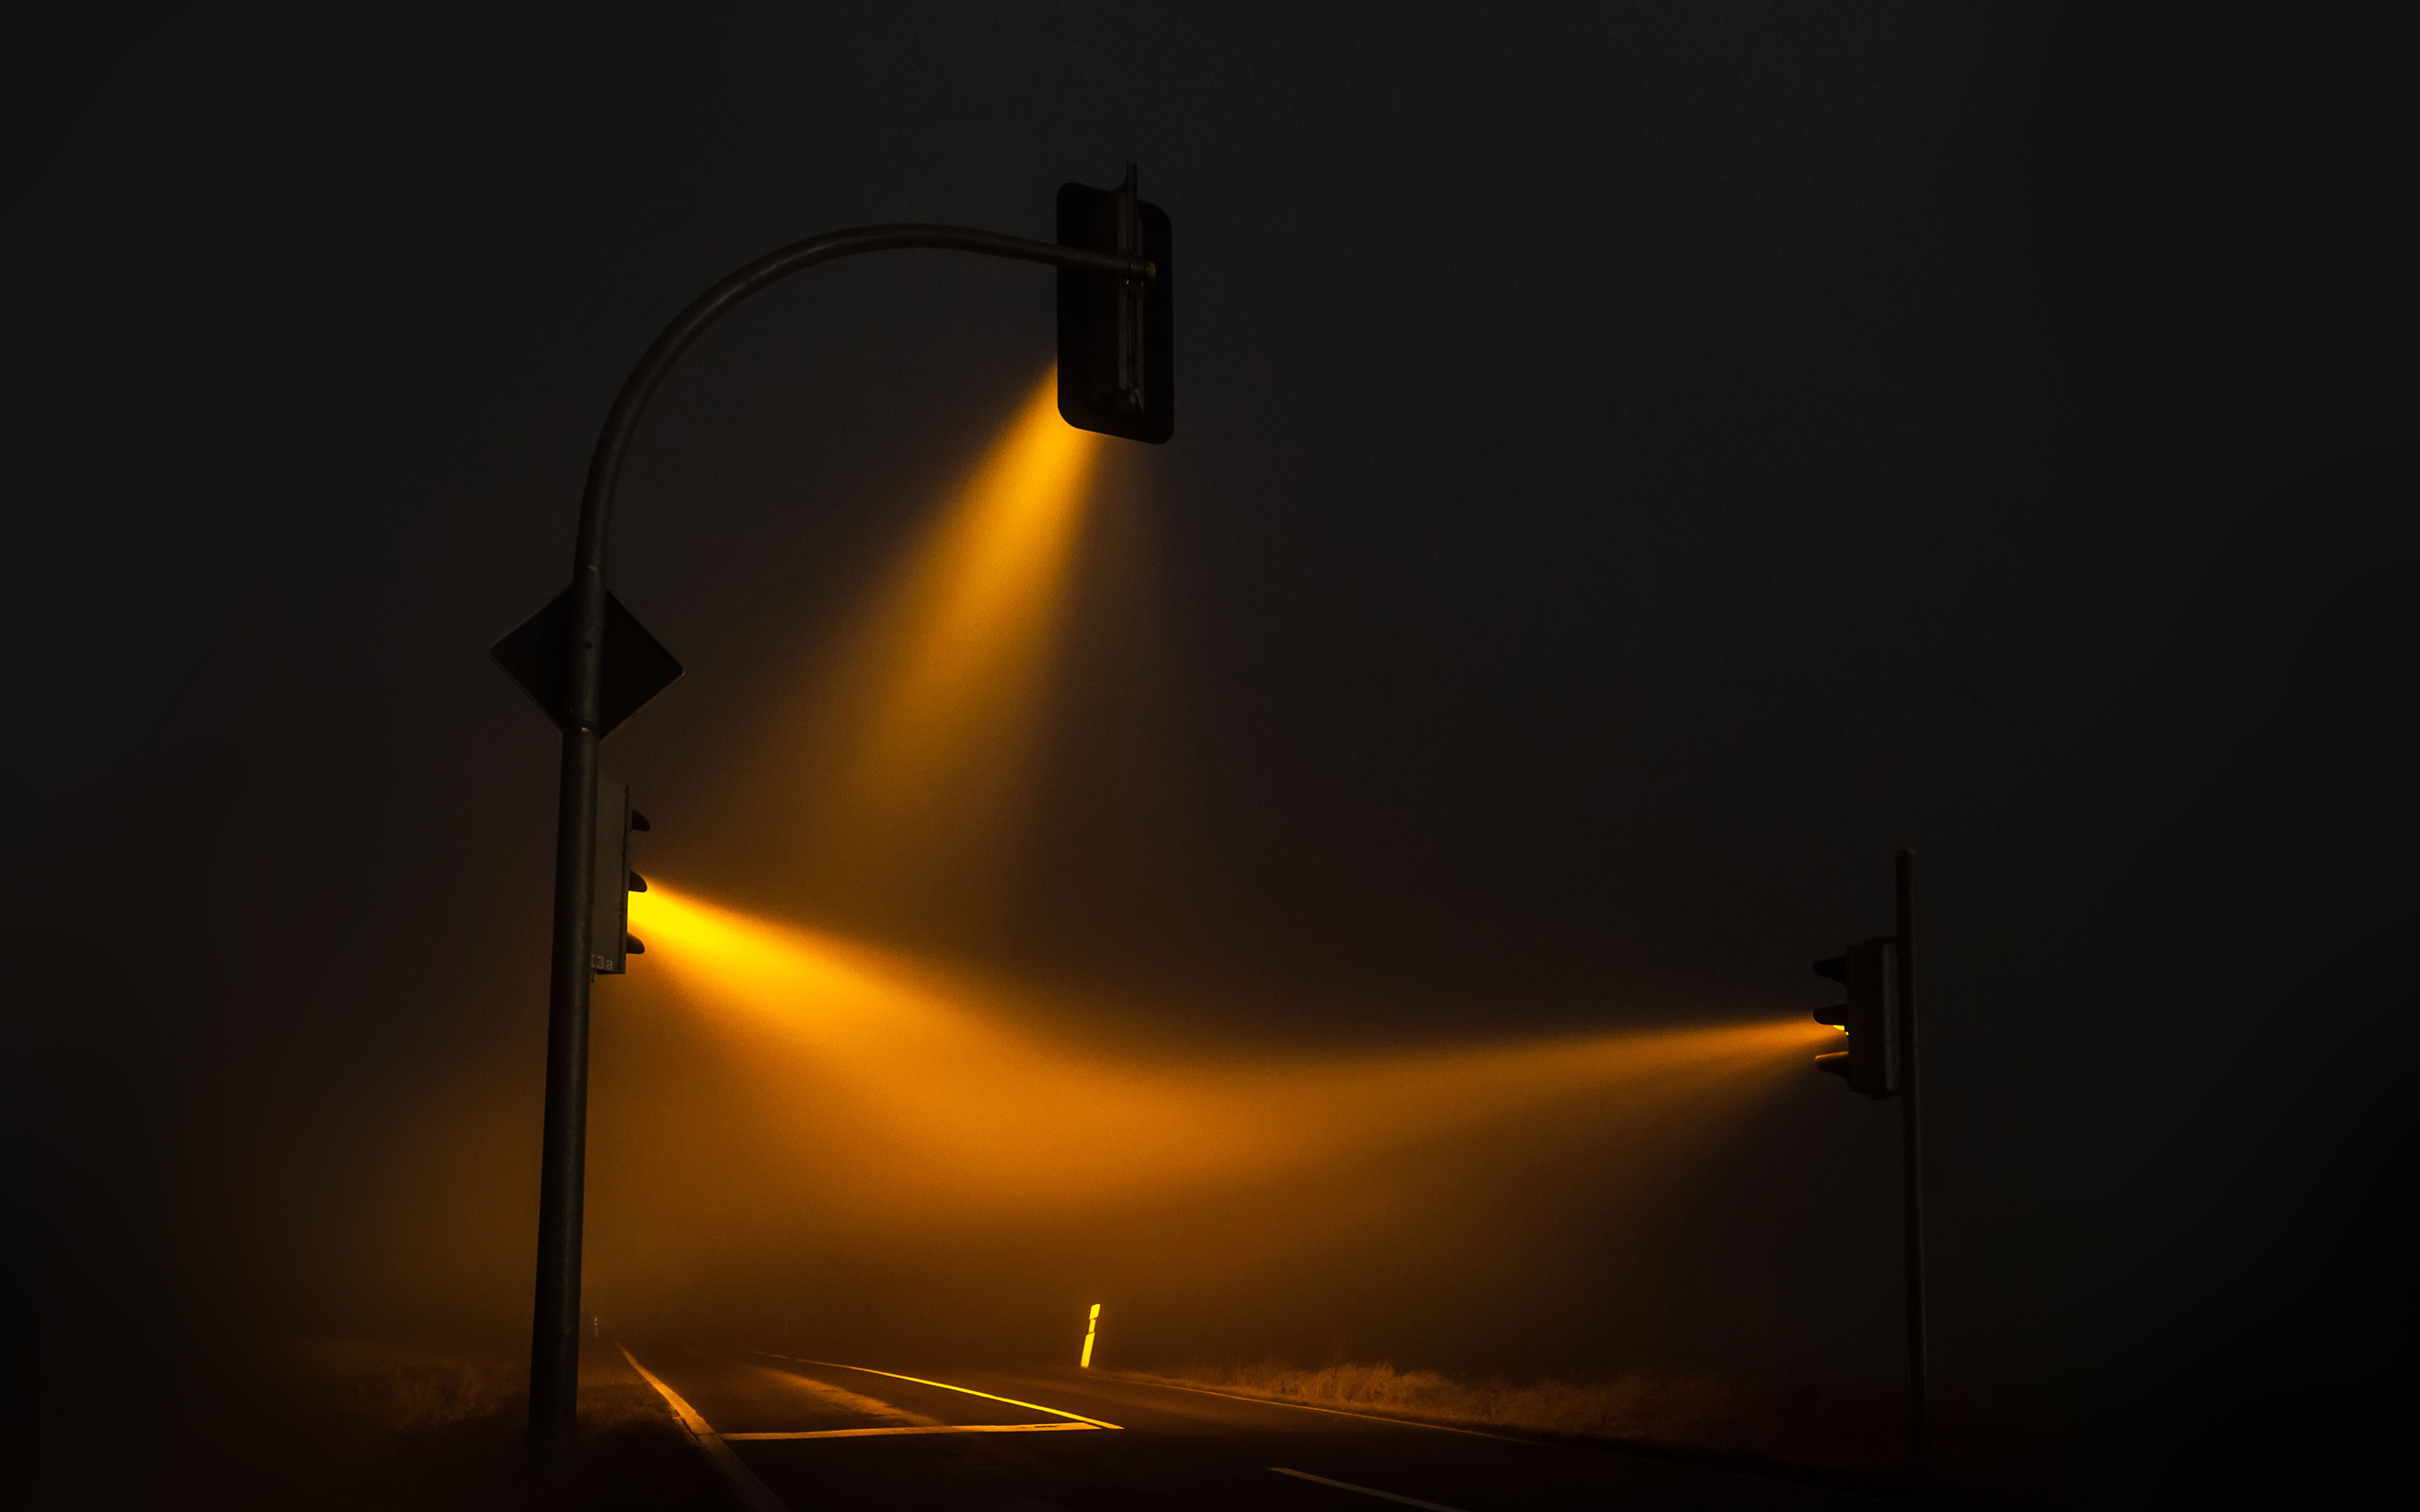 Luz amarilla, Traffic Lights, de Lucas Zimmerman.